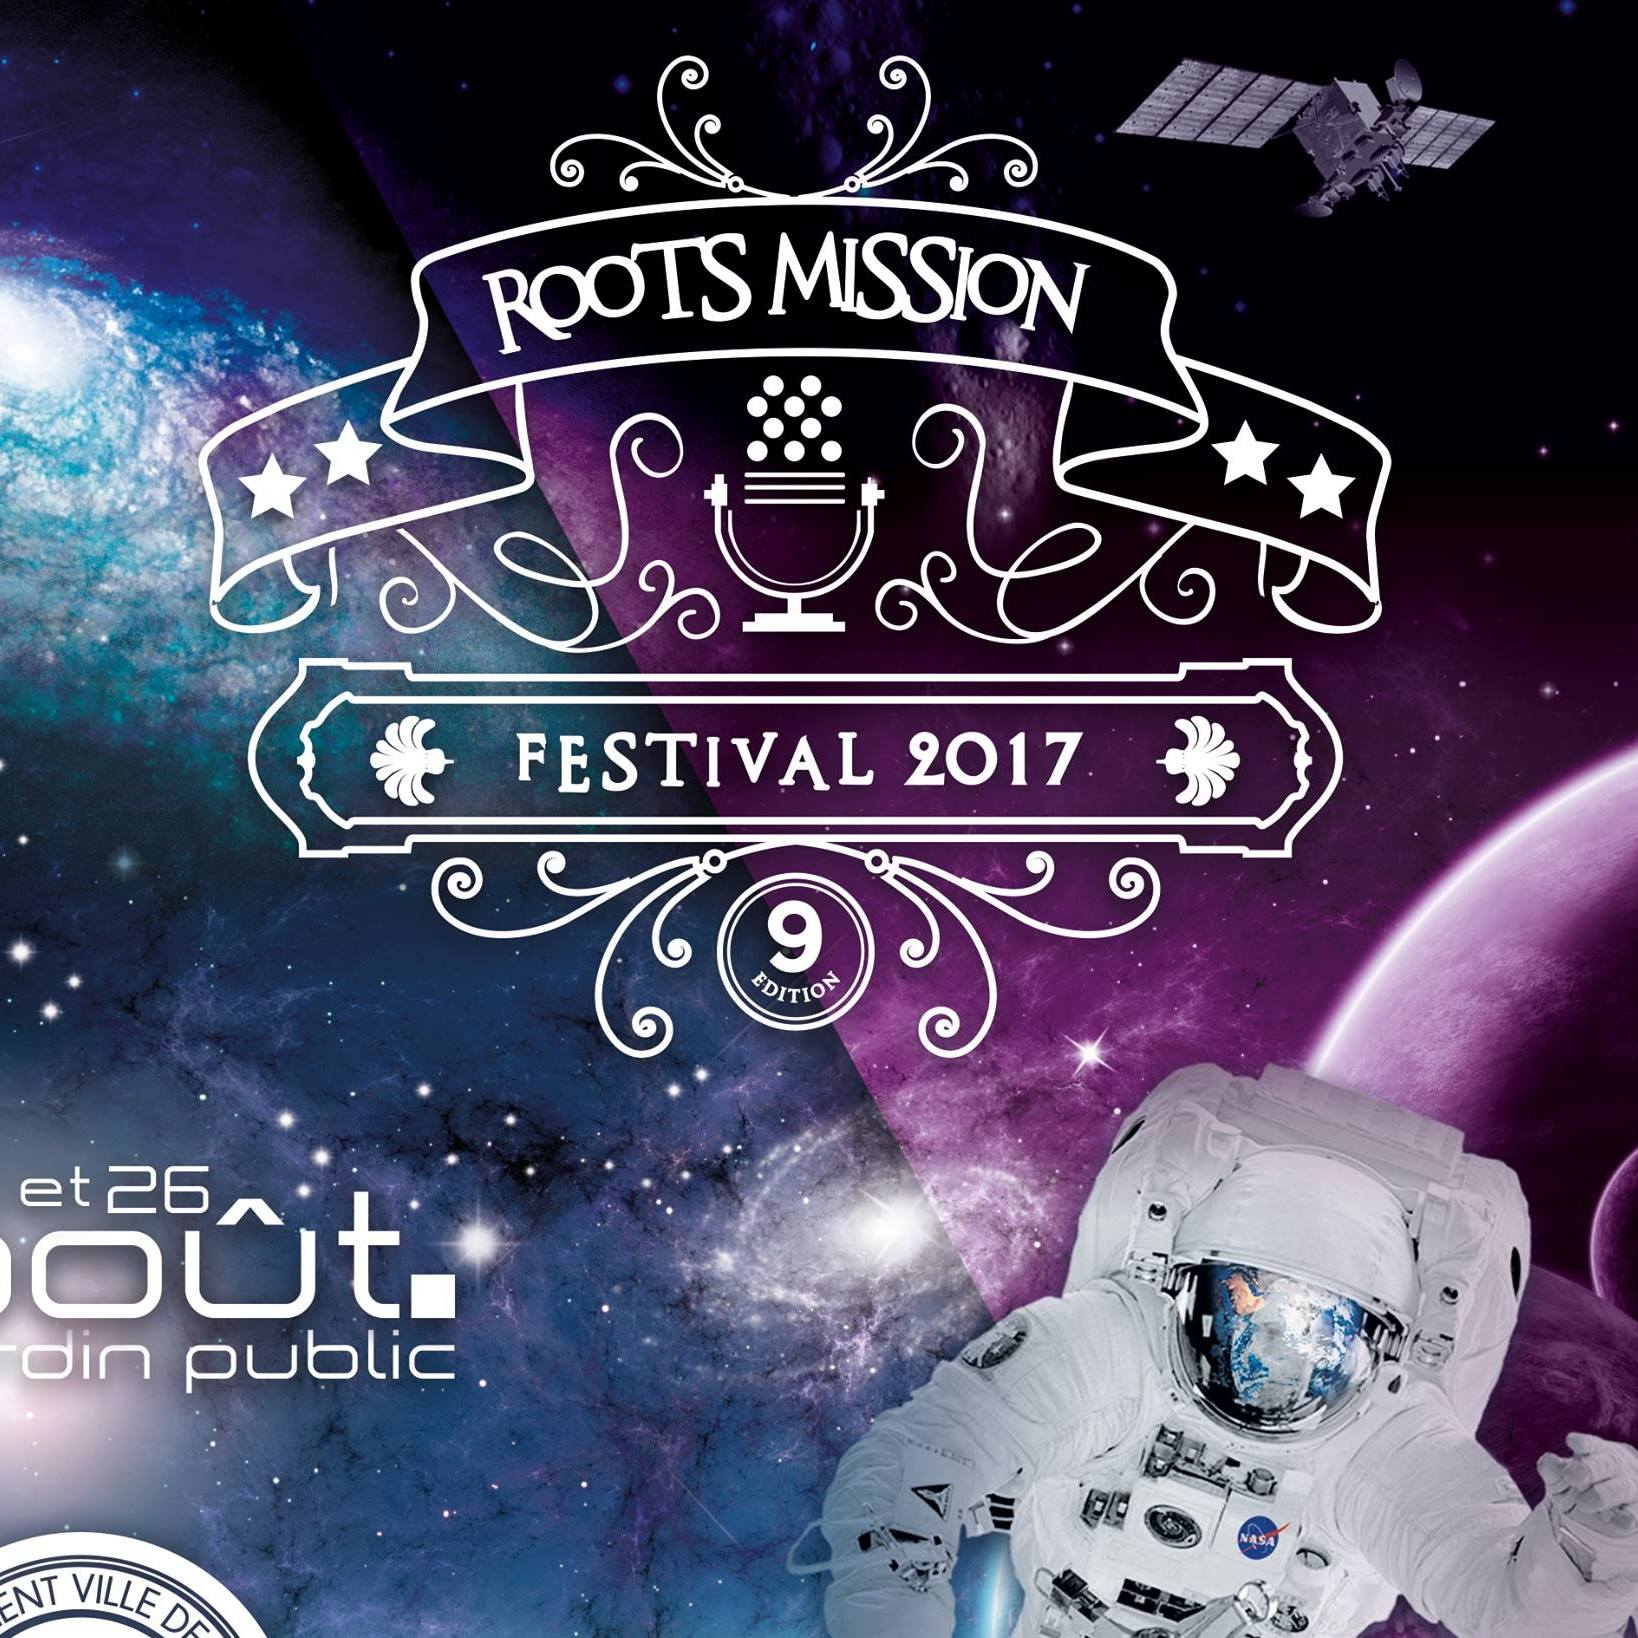 Roots Mission Festival 2017